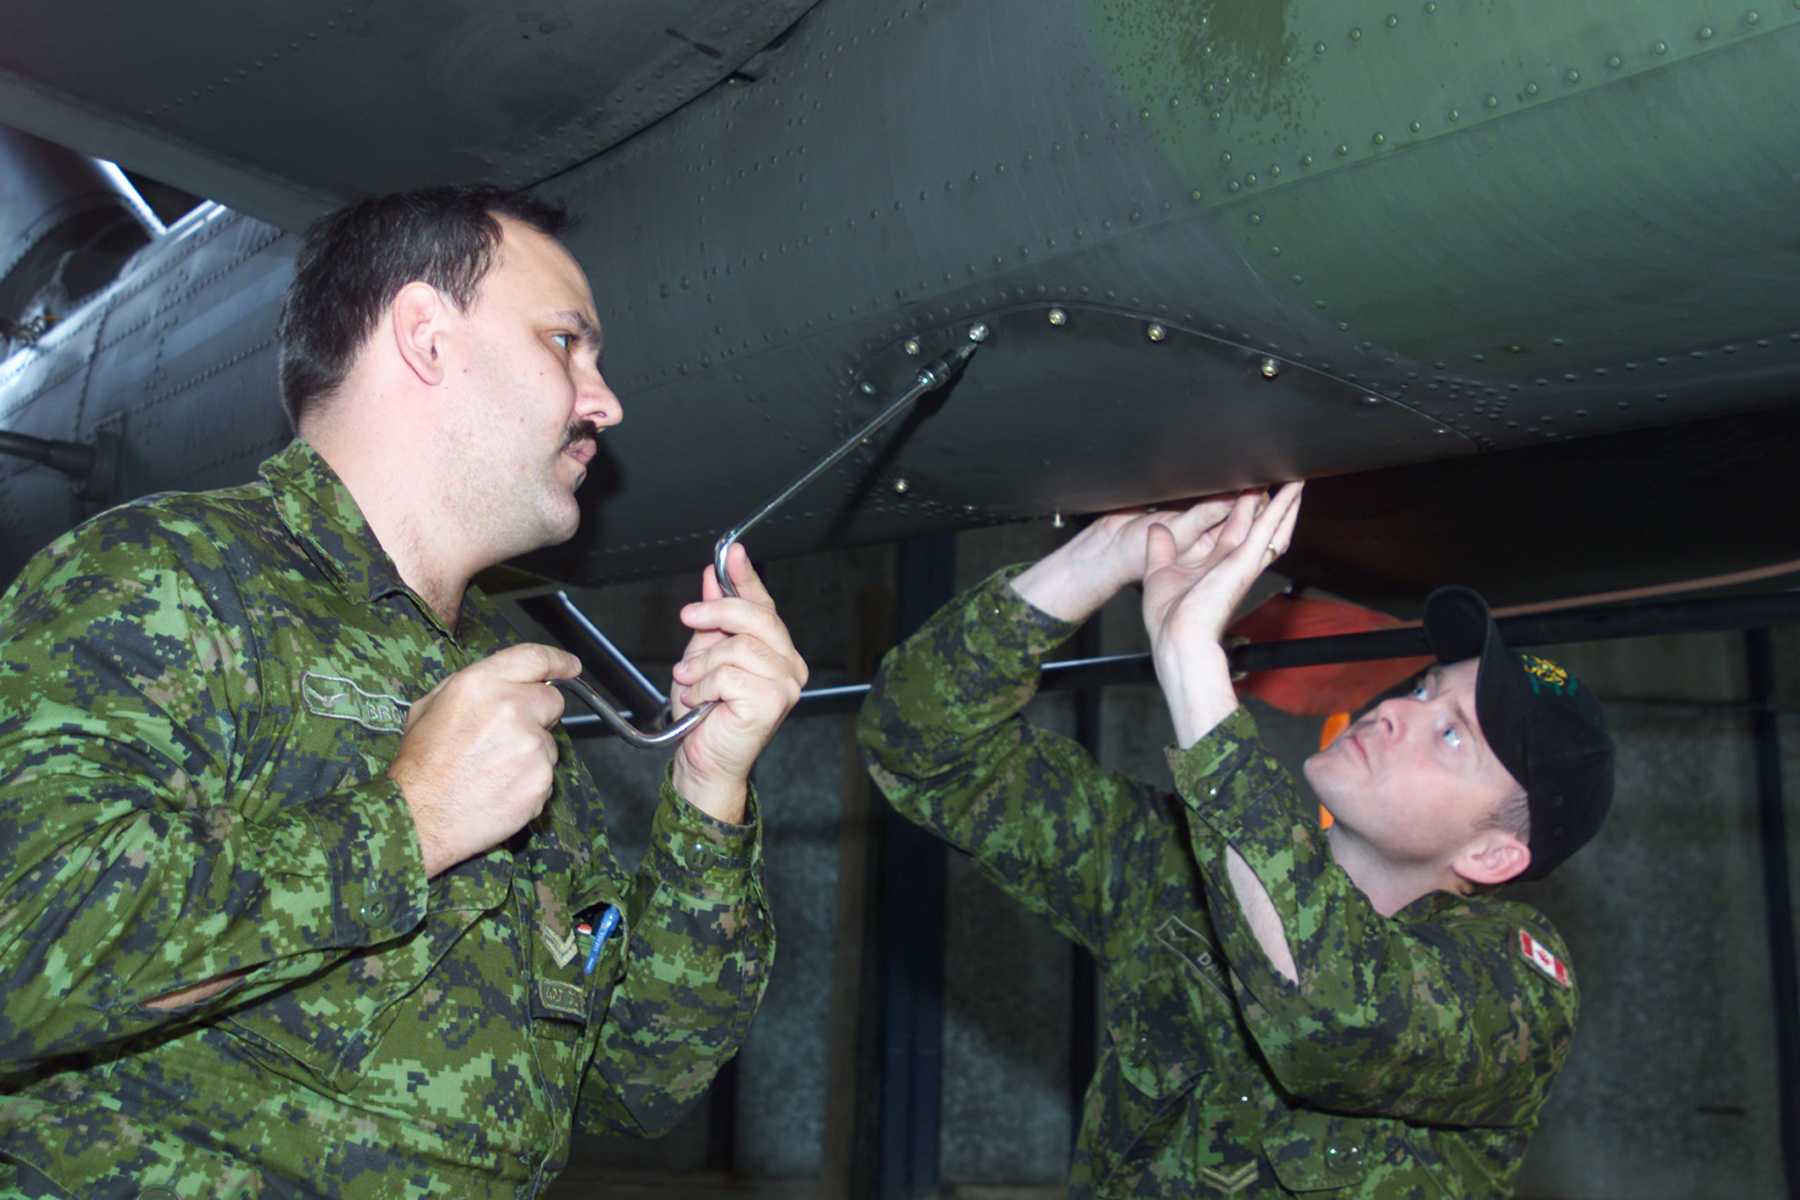 427 Squadron aircraft technicians Corporal Gerald Browne, from Guelph, Ontario, and Corporal Ian Daniels, from Mount Pearl, Newfoundland and Labrador, replace a panel on the underside of a CH-146 Griffin helicopter on November 16, 2002, in Velika Kladusa, Bosnia and Herzegovina, where 1,450 Canadians were deployed with NATO's Stabilization Force to enforce the peace in the region. PHOTO: Corporal John Clevett, VK2002-0229-01d